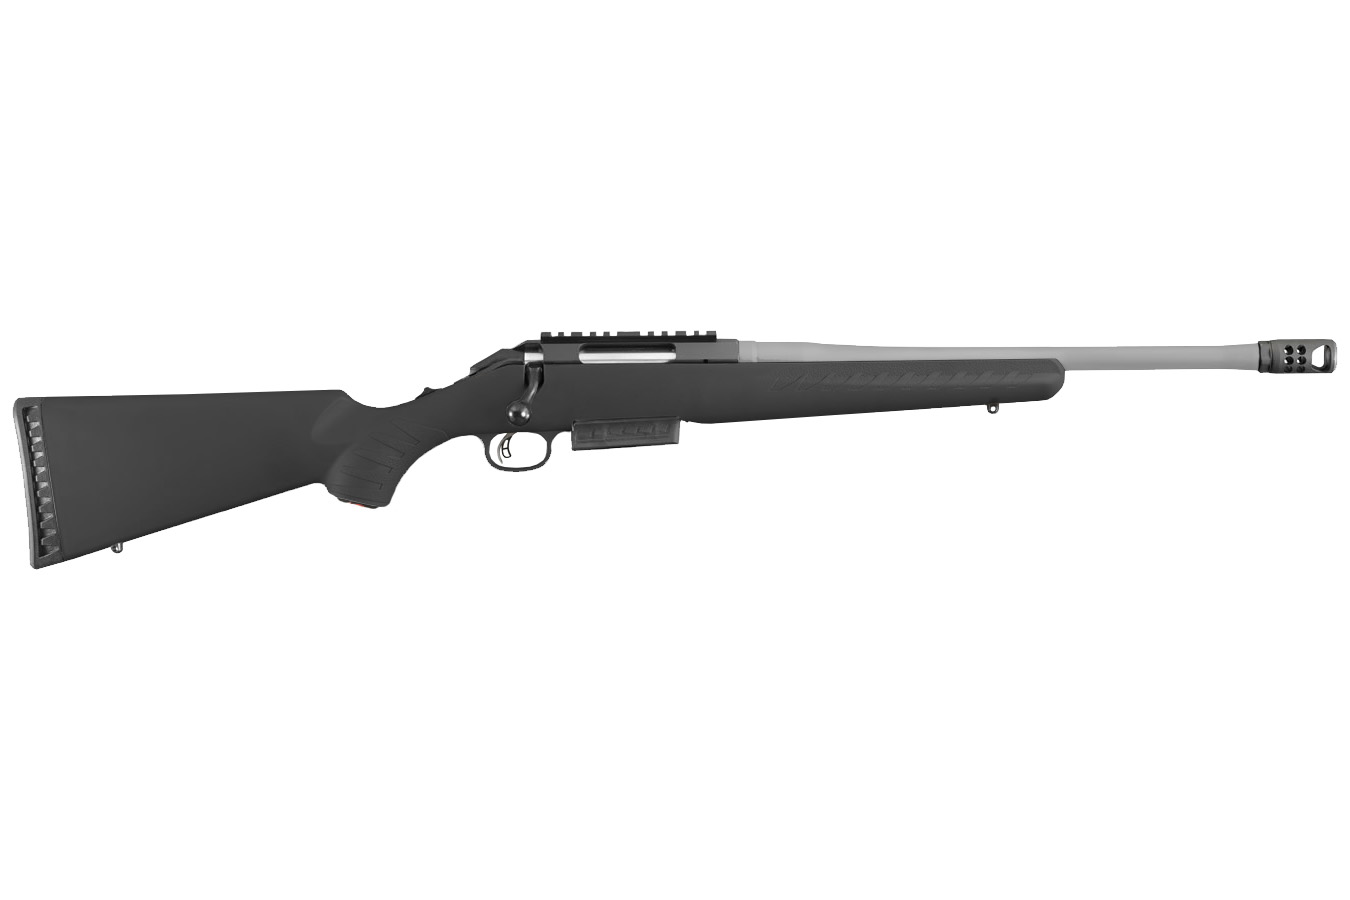 No. 14 Best Selling: RUGER AMERICAN RANCH RIFLE 450 BM MATTE STAINLESS